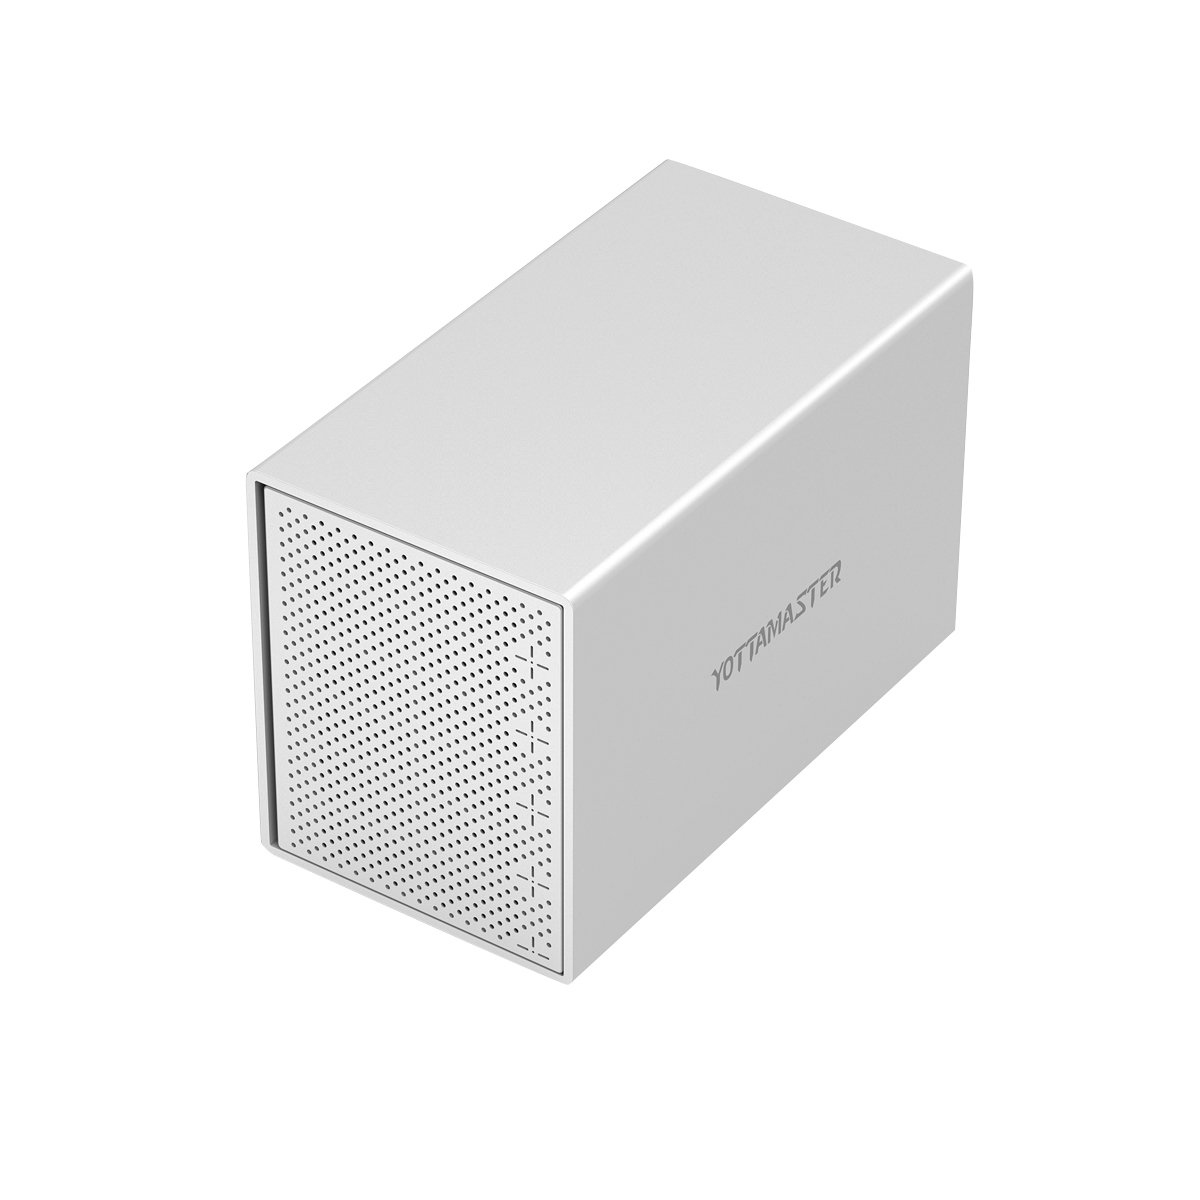 Yottamaster Aluminum Alloy 5 Bay USB3.0 3.5'' Hard Drive Enclosure for 3.5 Inch SATA HDD Support 5 x 10TB & UASP -Silver by Yottamaster